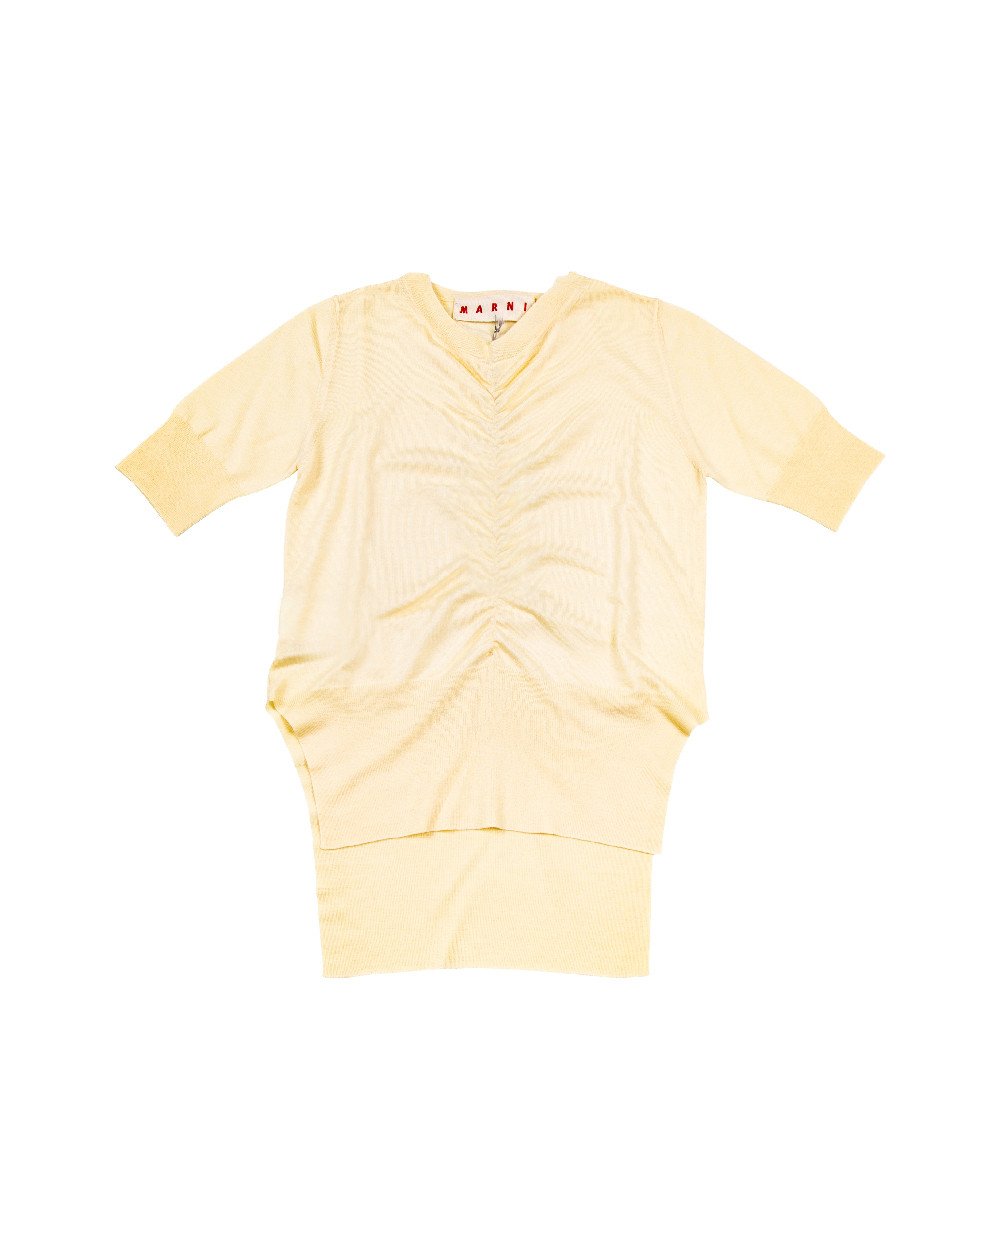 Light yellow T-shirt Marni for women